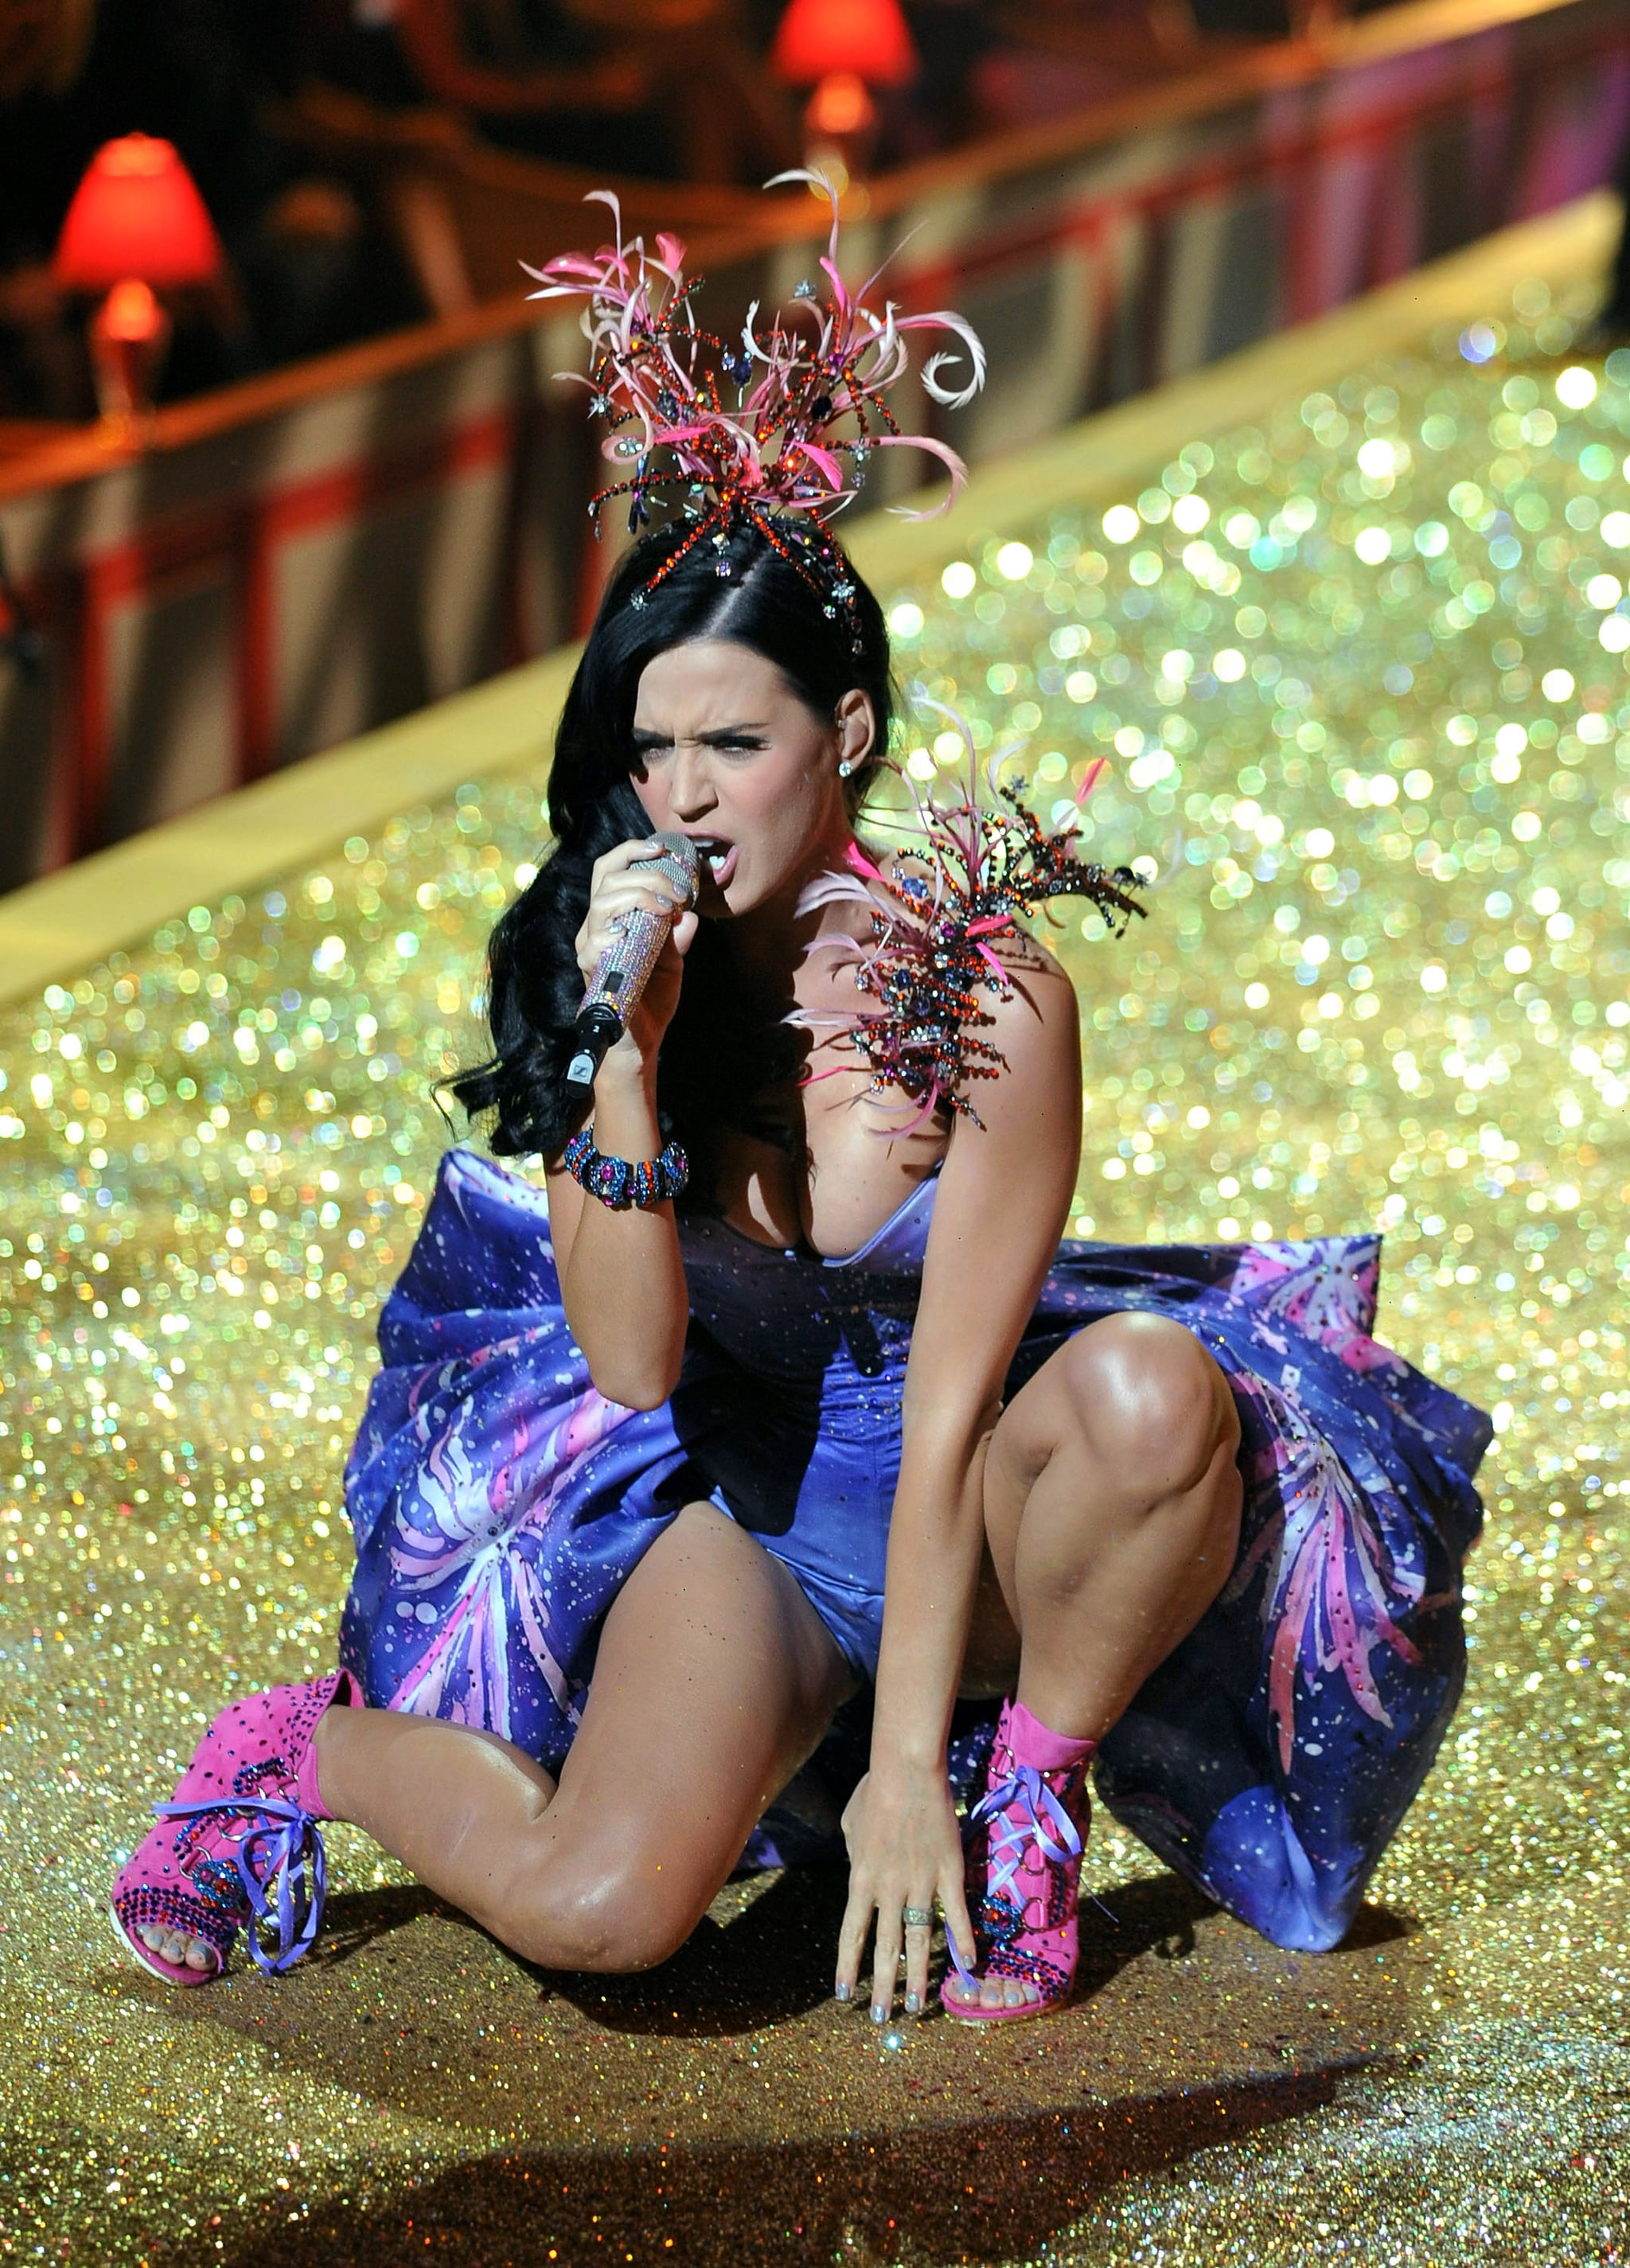 Katy Perry belted out multiple songs in 2010.